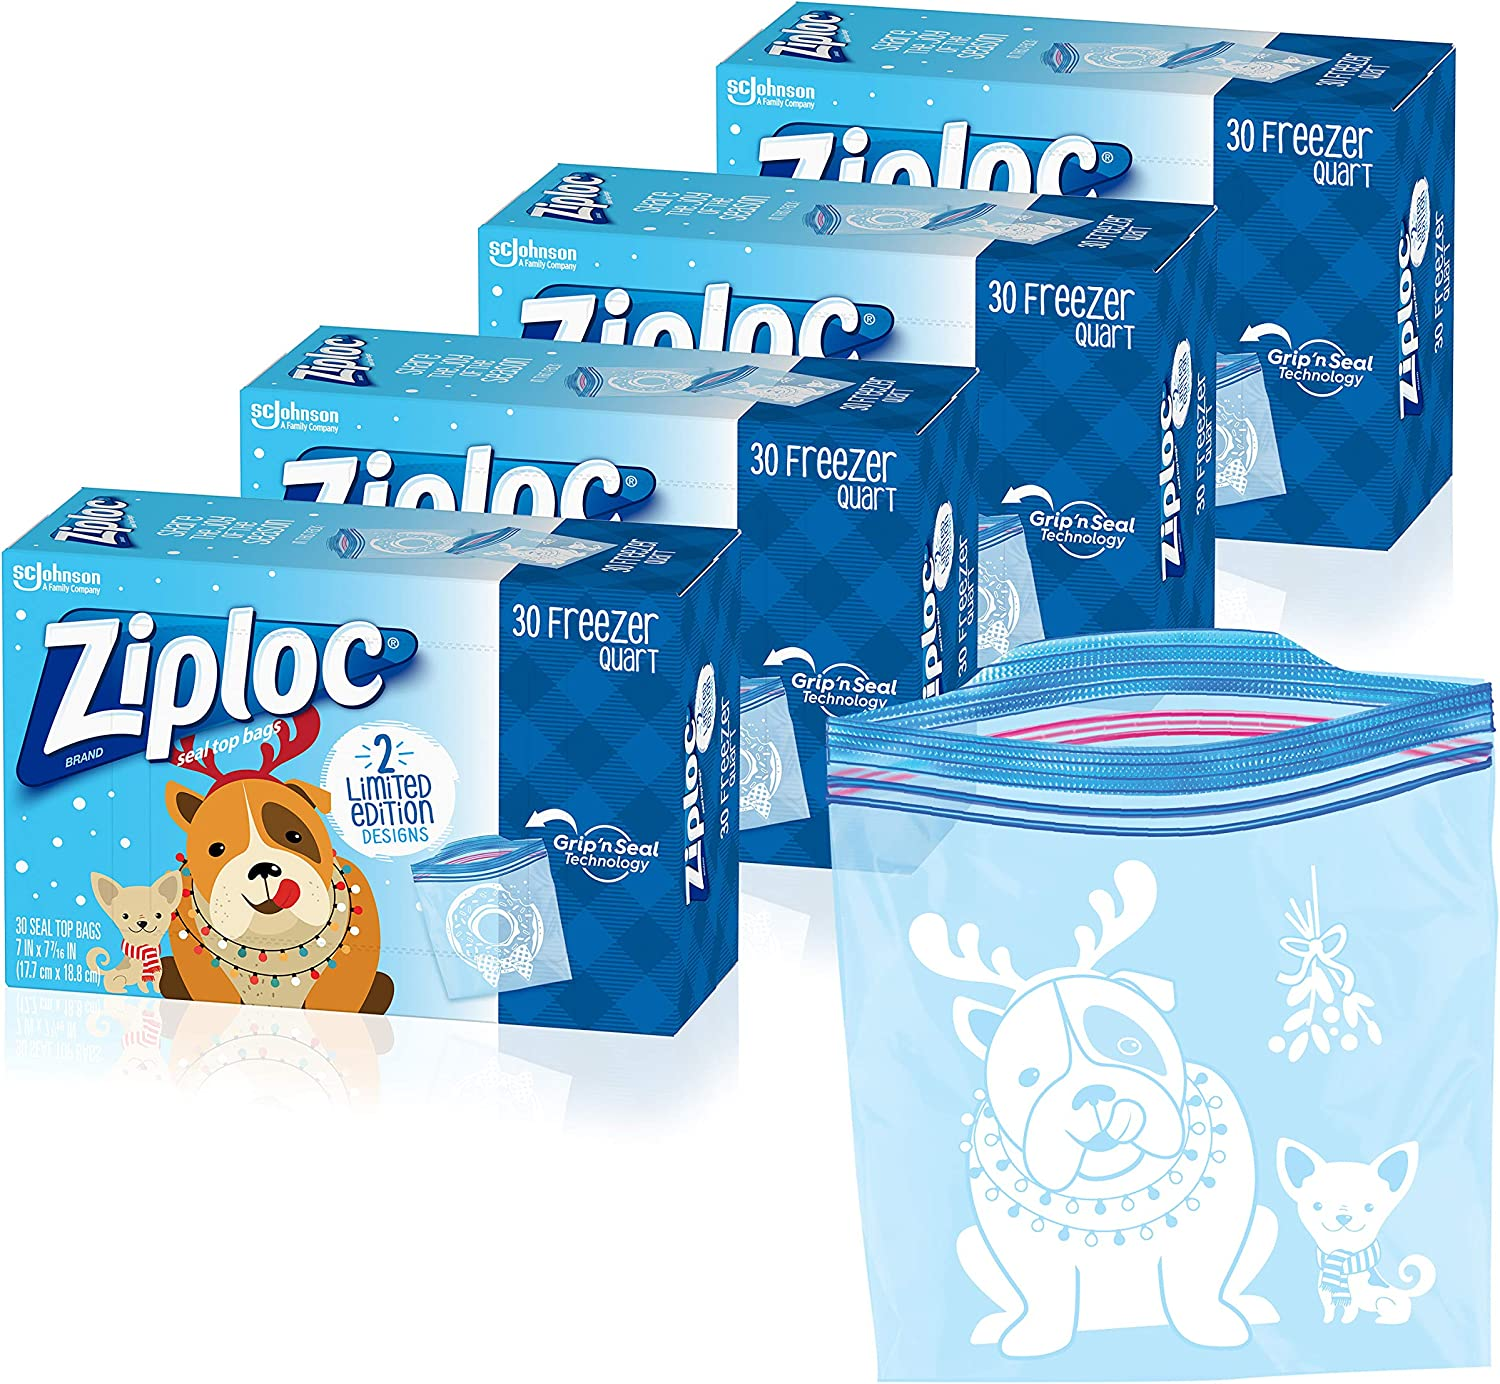 Ziploc Freezer Bags with New Grip 'n Seal Technology, Quart, 120 Count, Holiday Designs